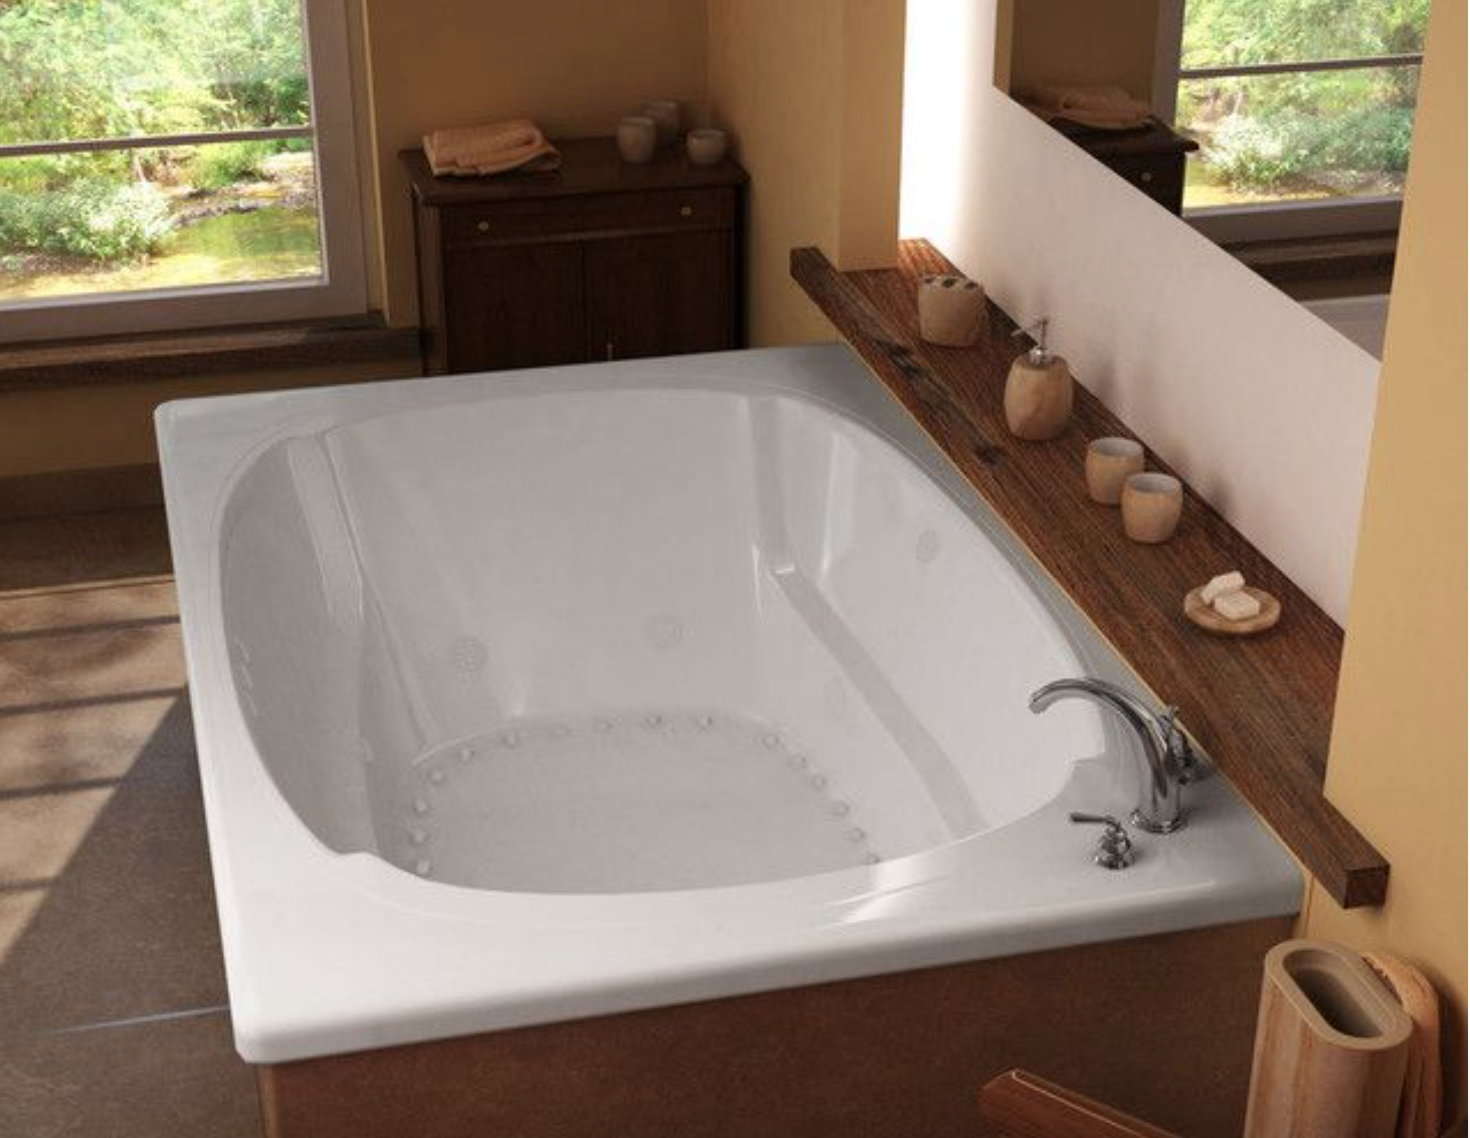 I like this large drop in tub with the shelf and mirror